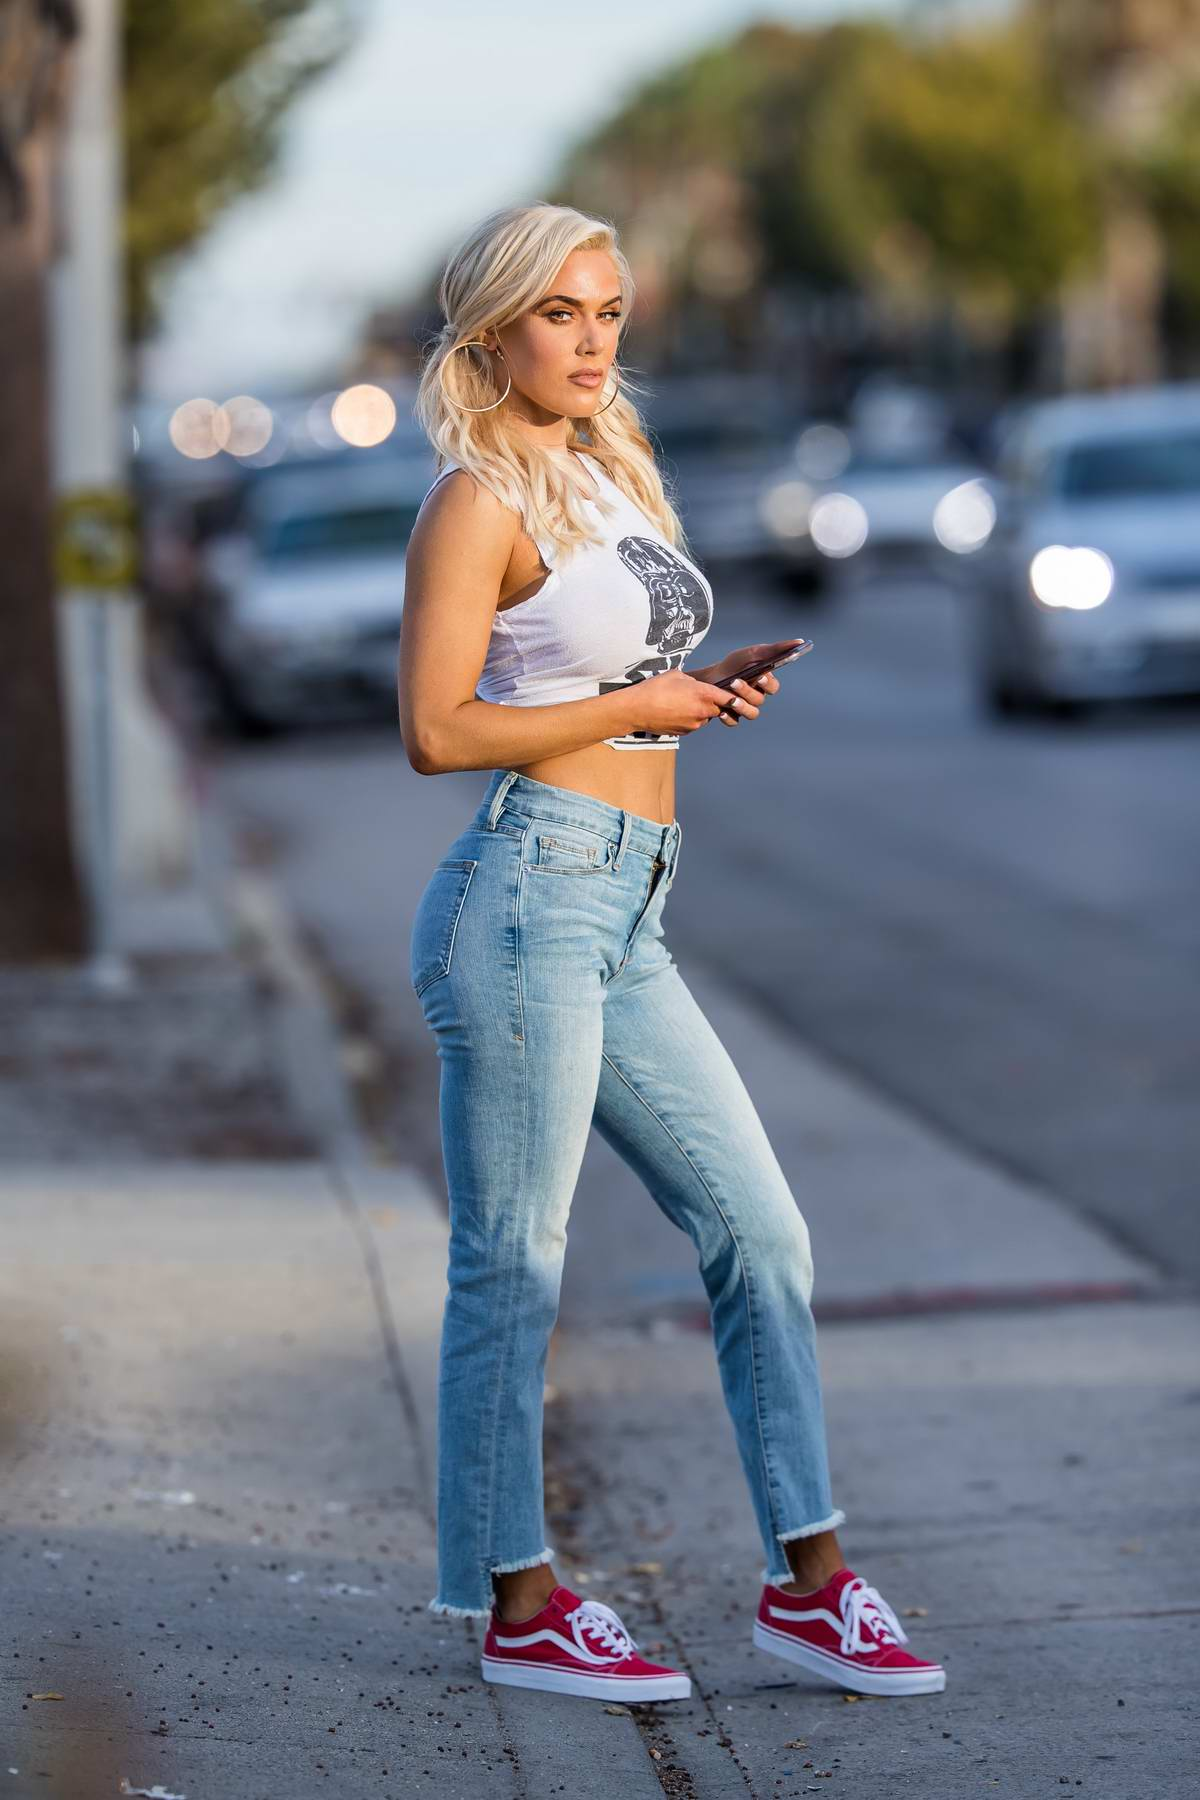 CJ 'Lana' Perry wearing a tight fit 'Star Wars' cropped vest top and jeans while out in Los Angeles